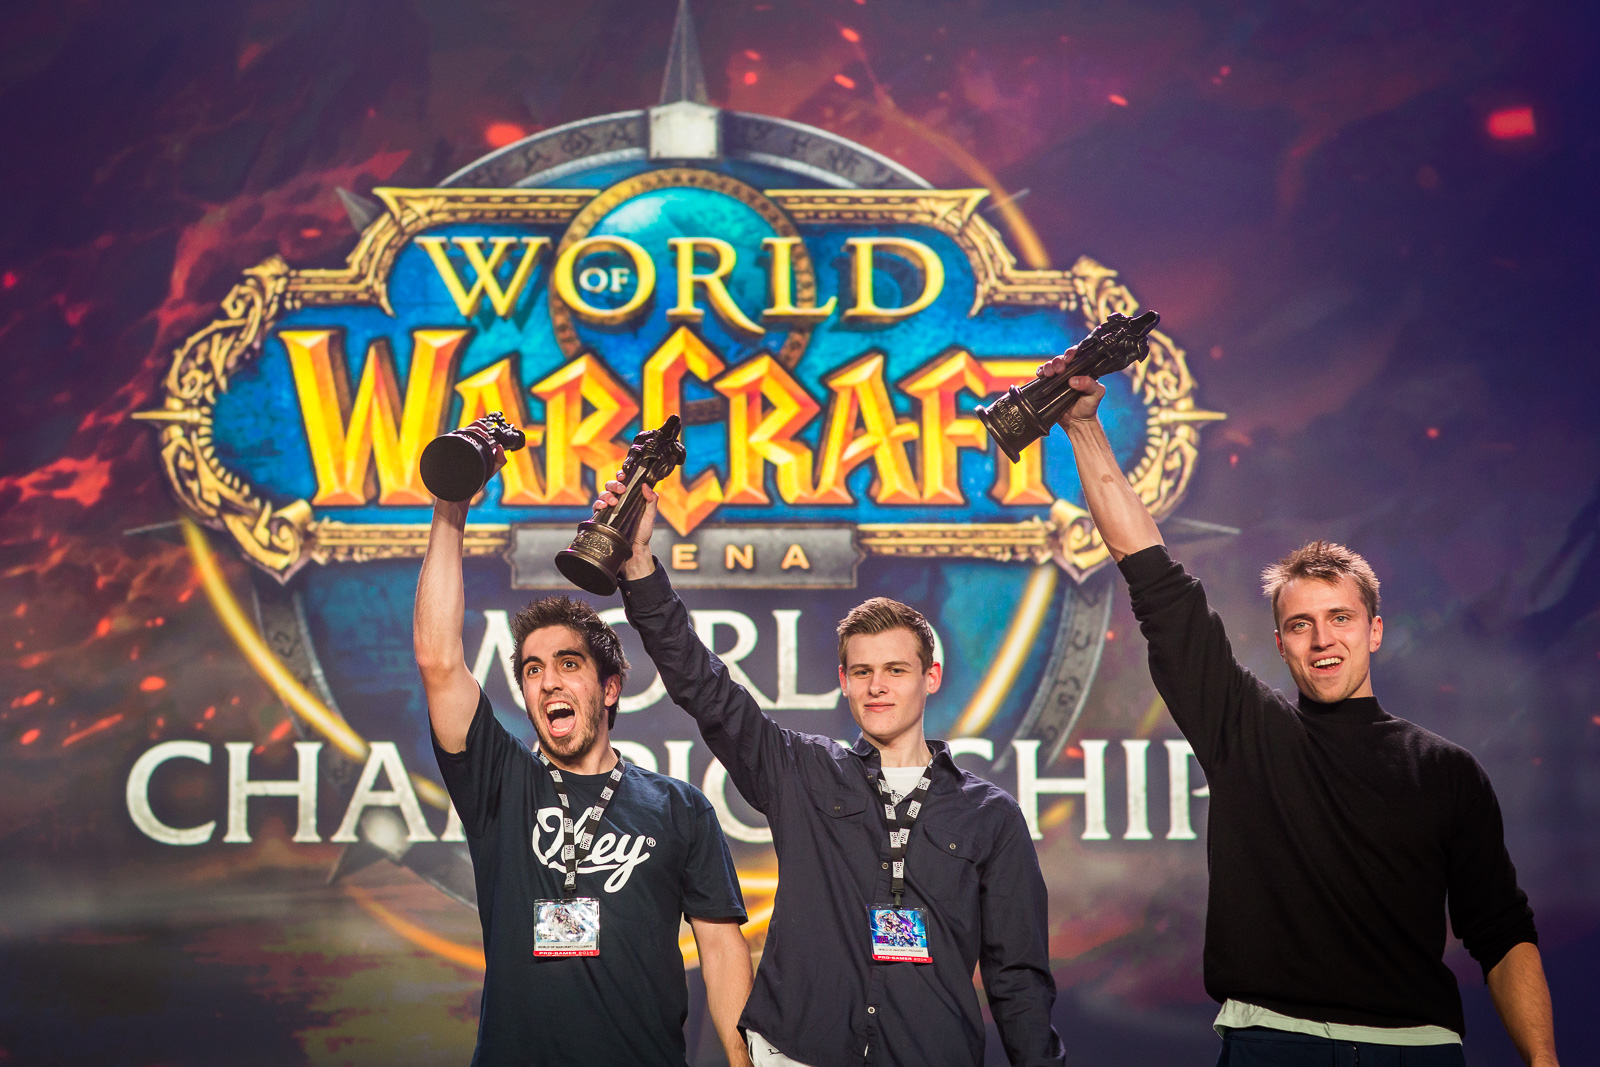 Team Bleached Bones victorius in the World of WarCraft Arena Championship 2014 (L-R): Anton